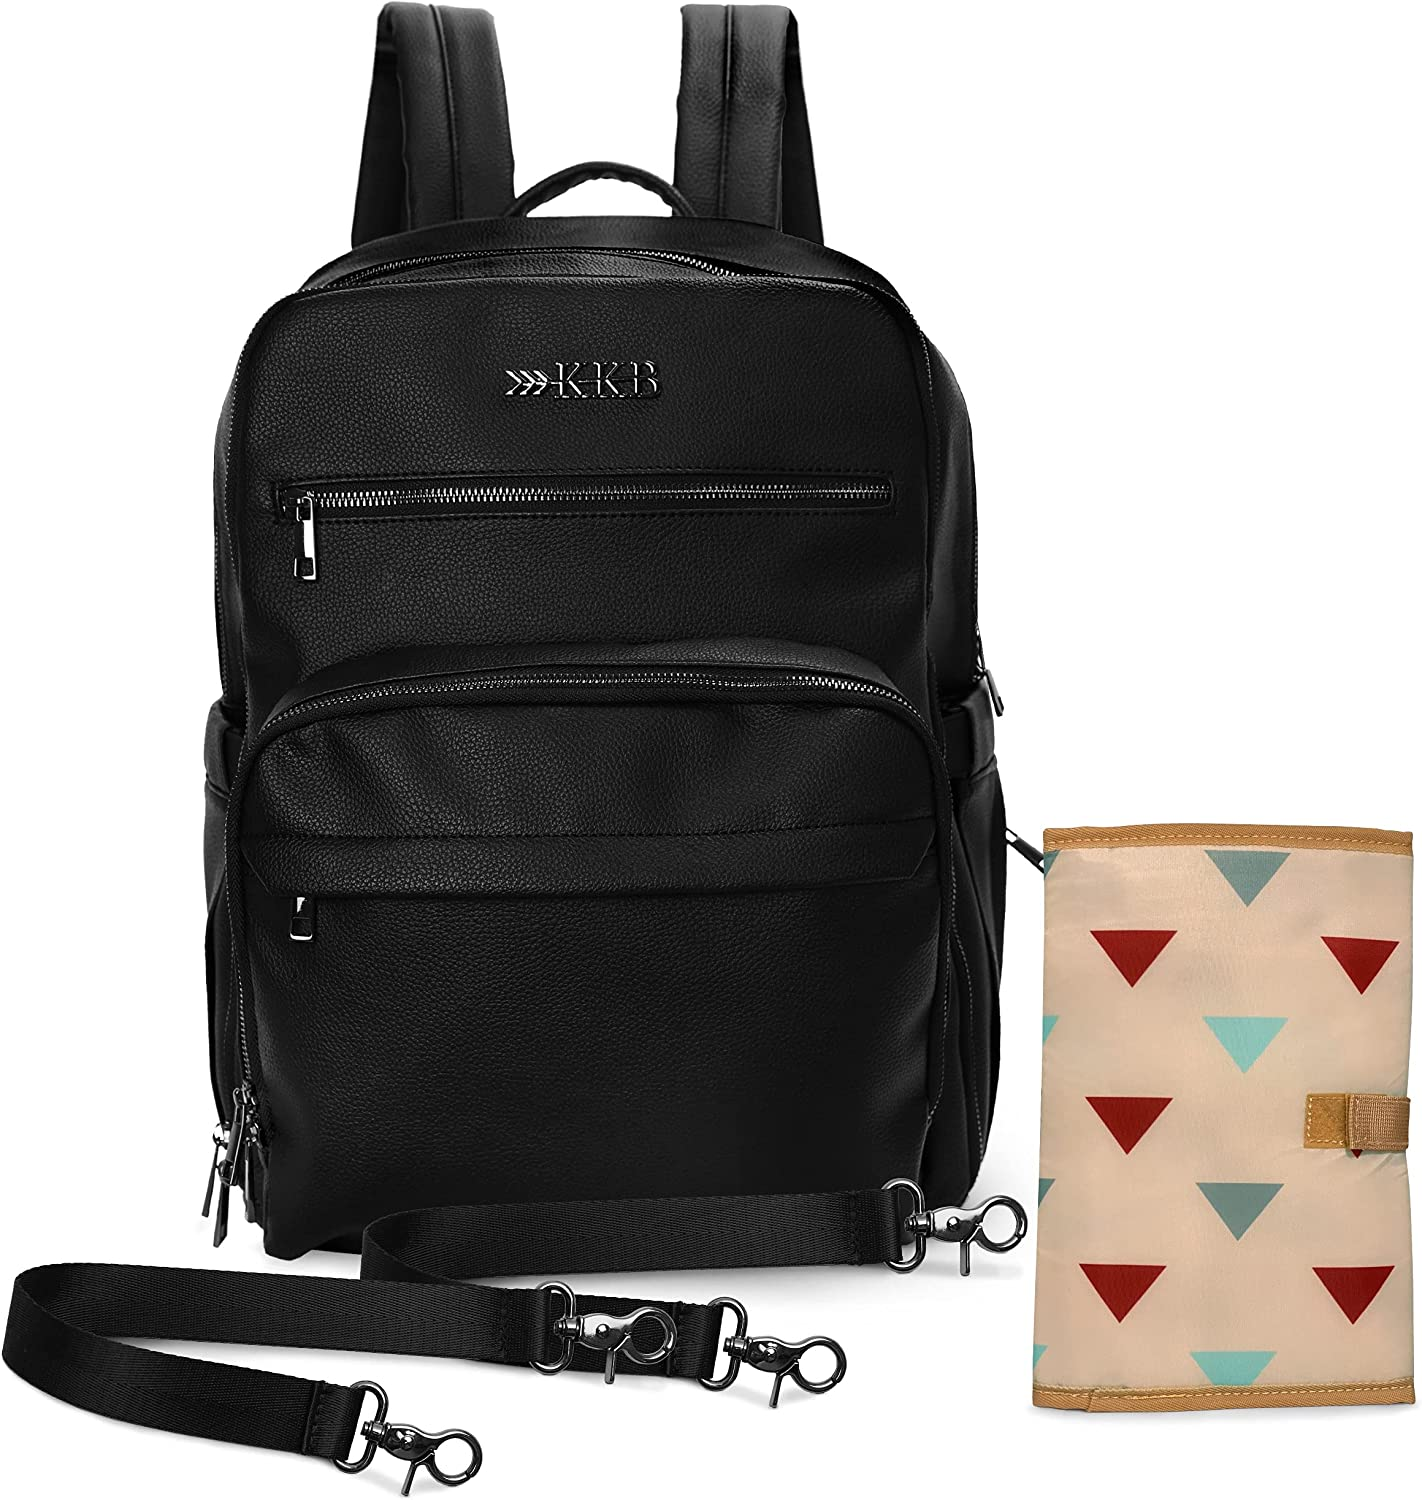 KKB Vegan Leather Diaper Bag Large Backpack, Equipped with Changing Pad, Stroller Straps and Elastic Strap for Travel